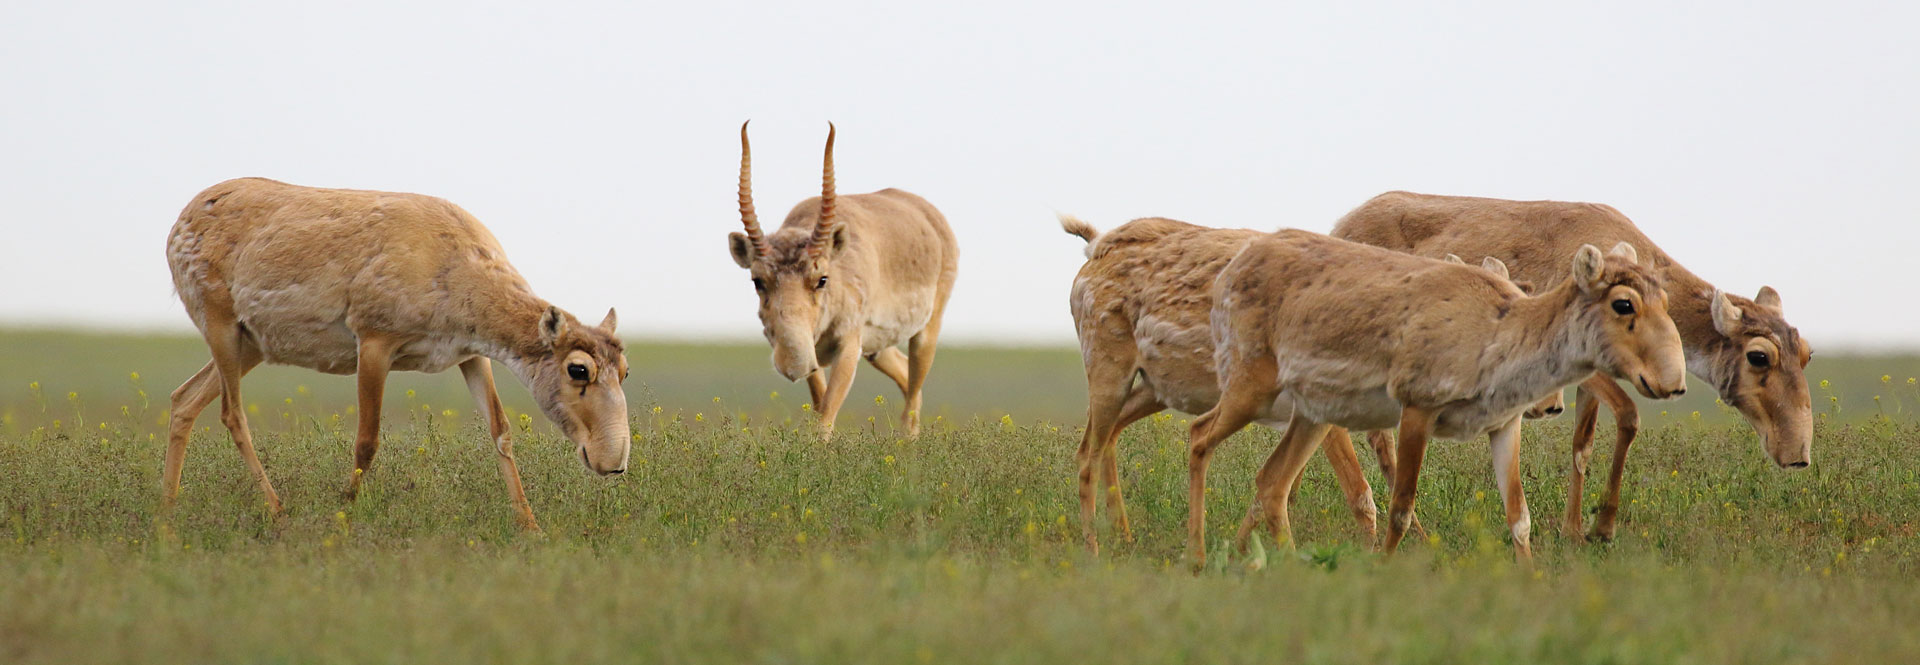 Saiga Antelope - Conjour Conservation Species Report - Group of Saiga - 5